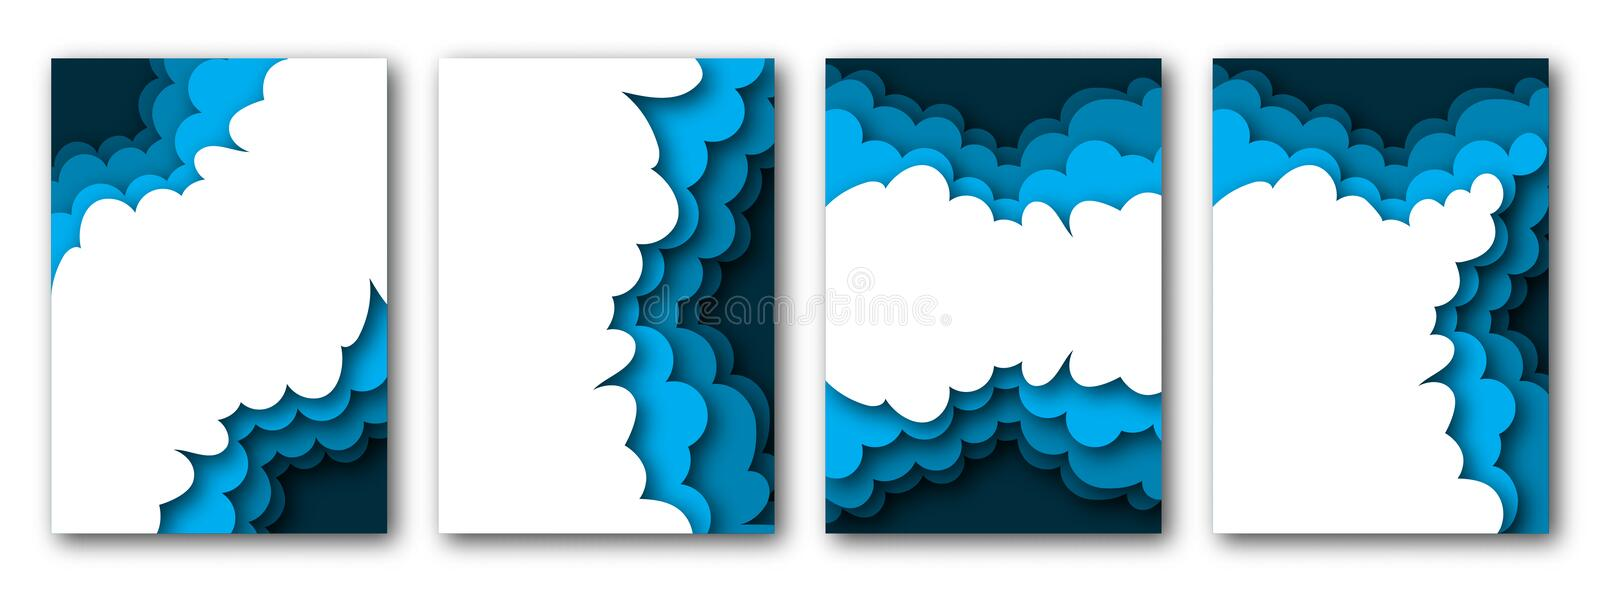 Paper cut summer posters template with cloudy sky and place for text. stock illustration